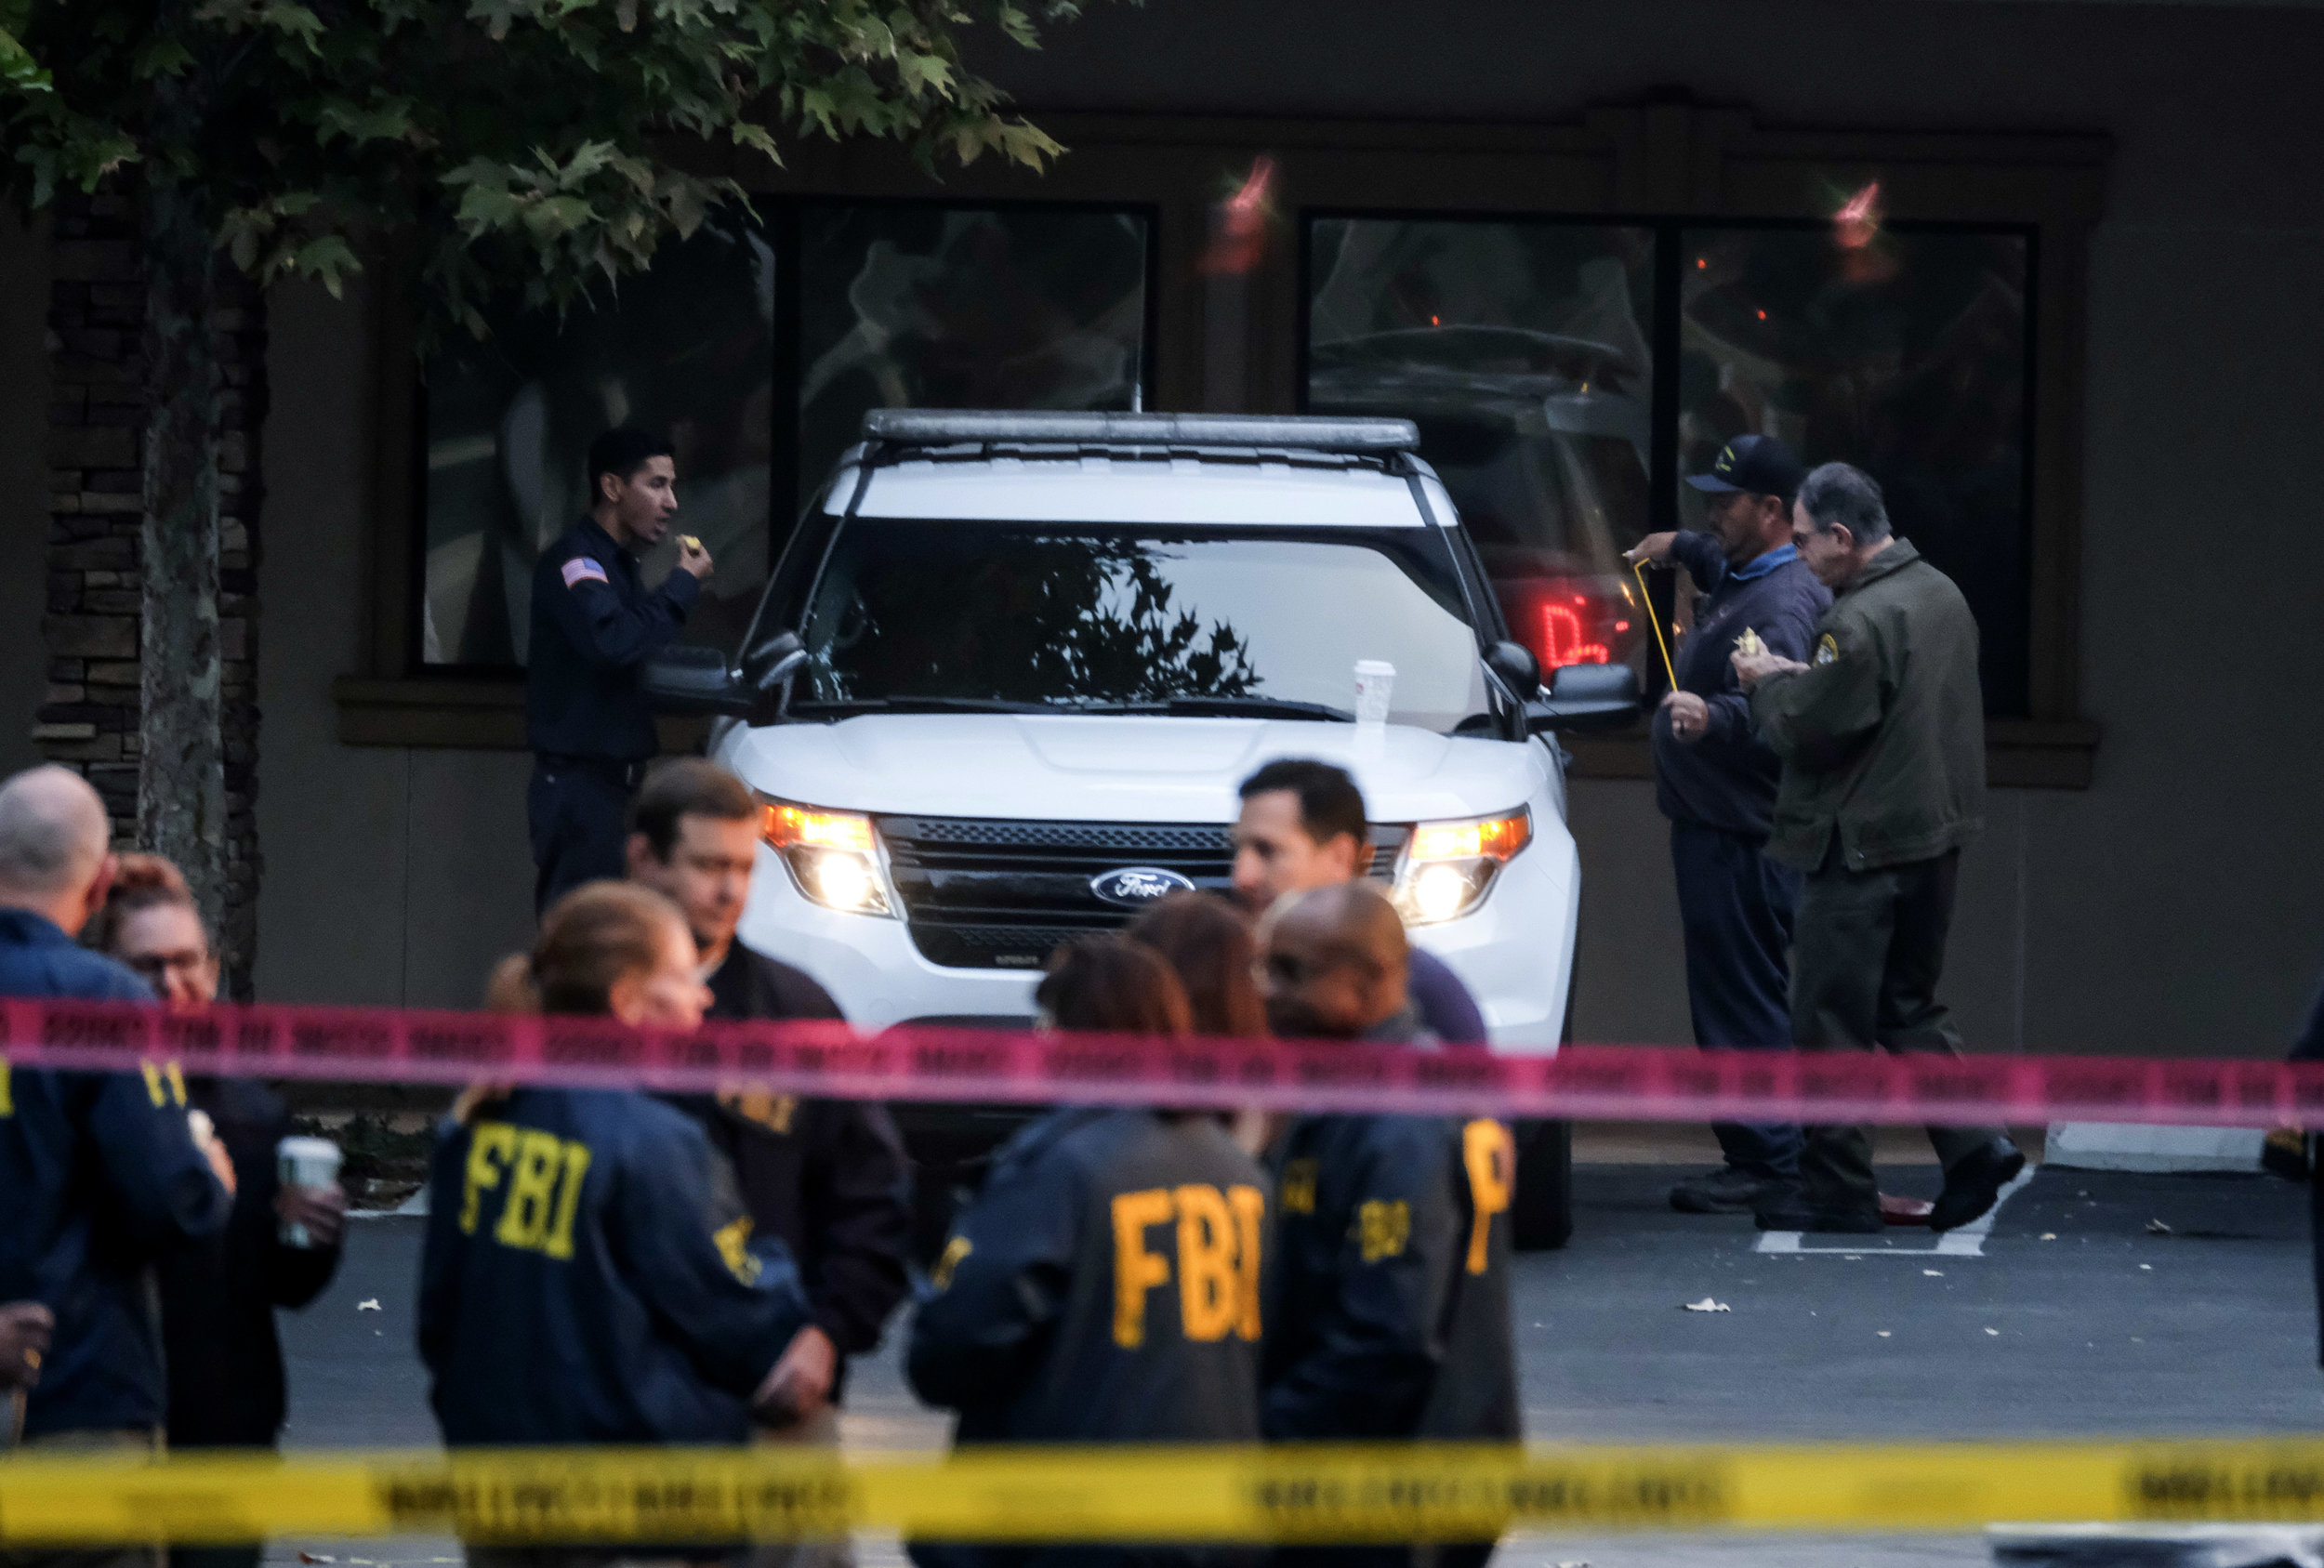 Members of FBI investigate the site of a mass shooting at a bar in Thousand Oaks, California, U.S. November 8, 2018.